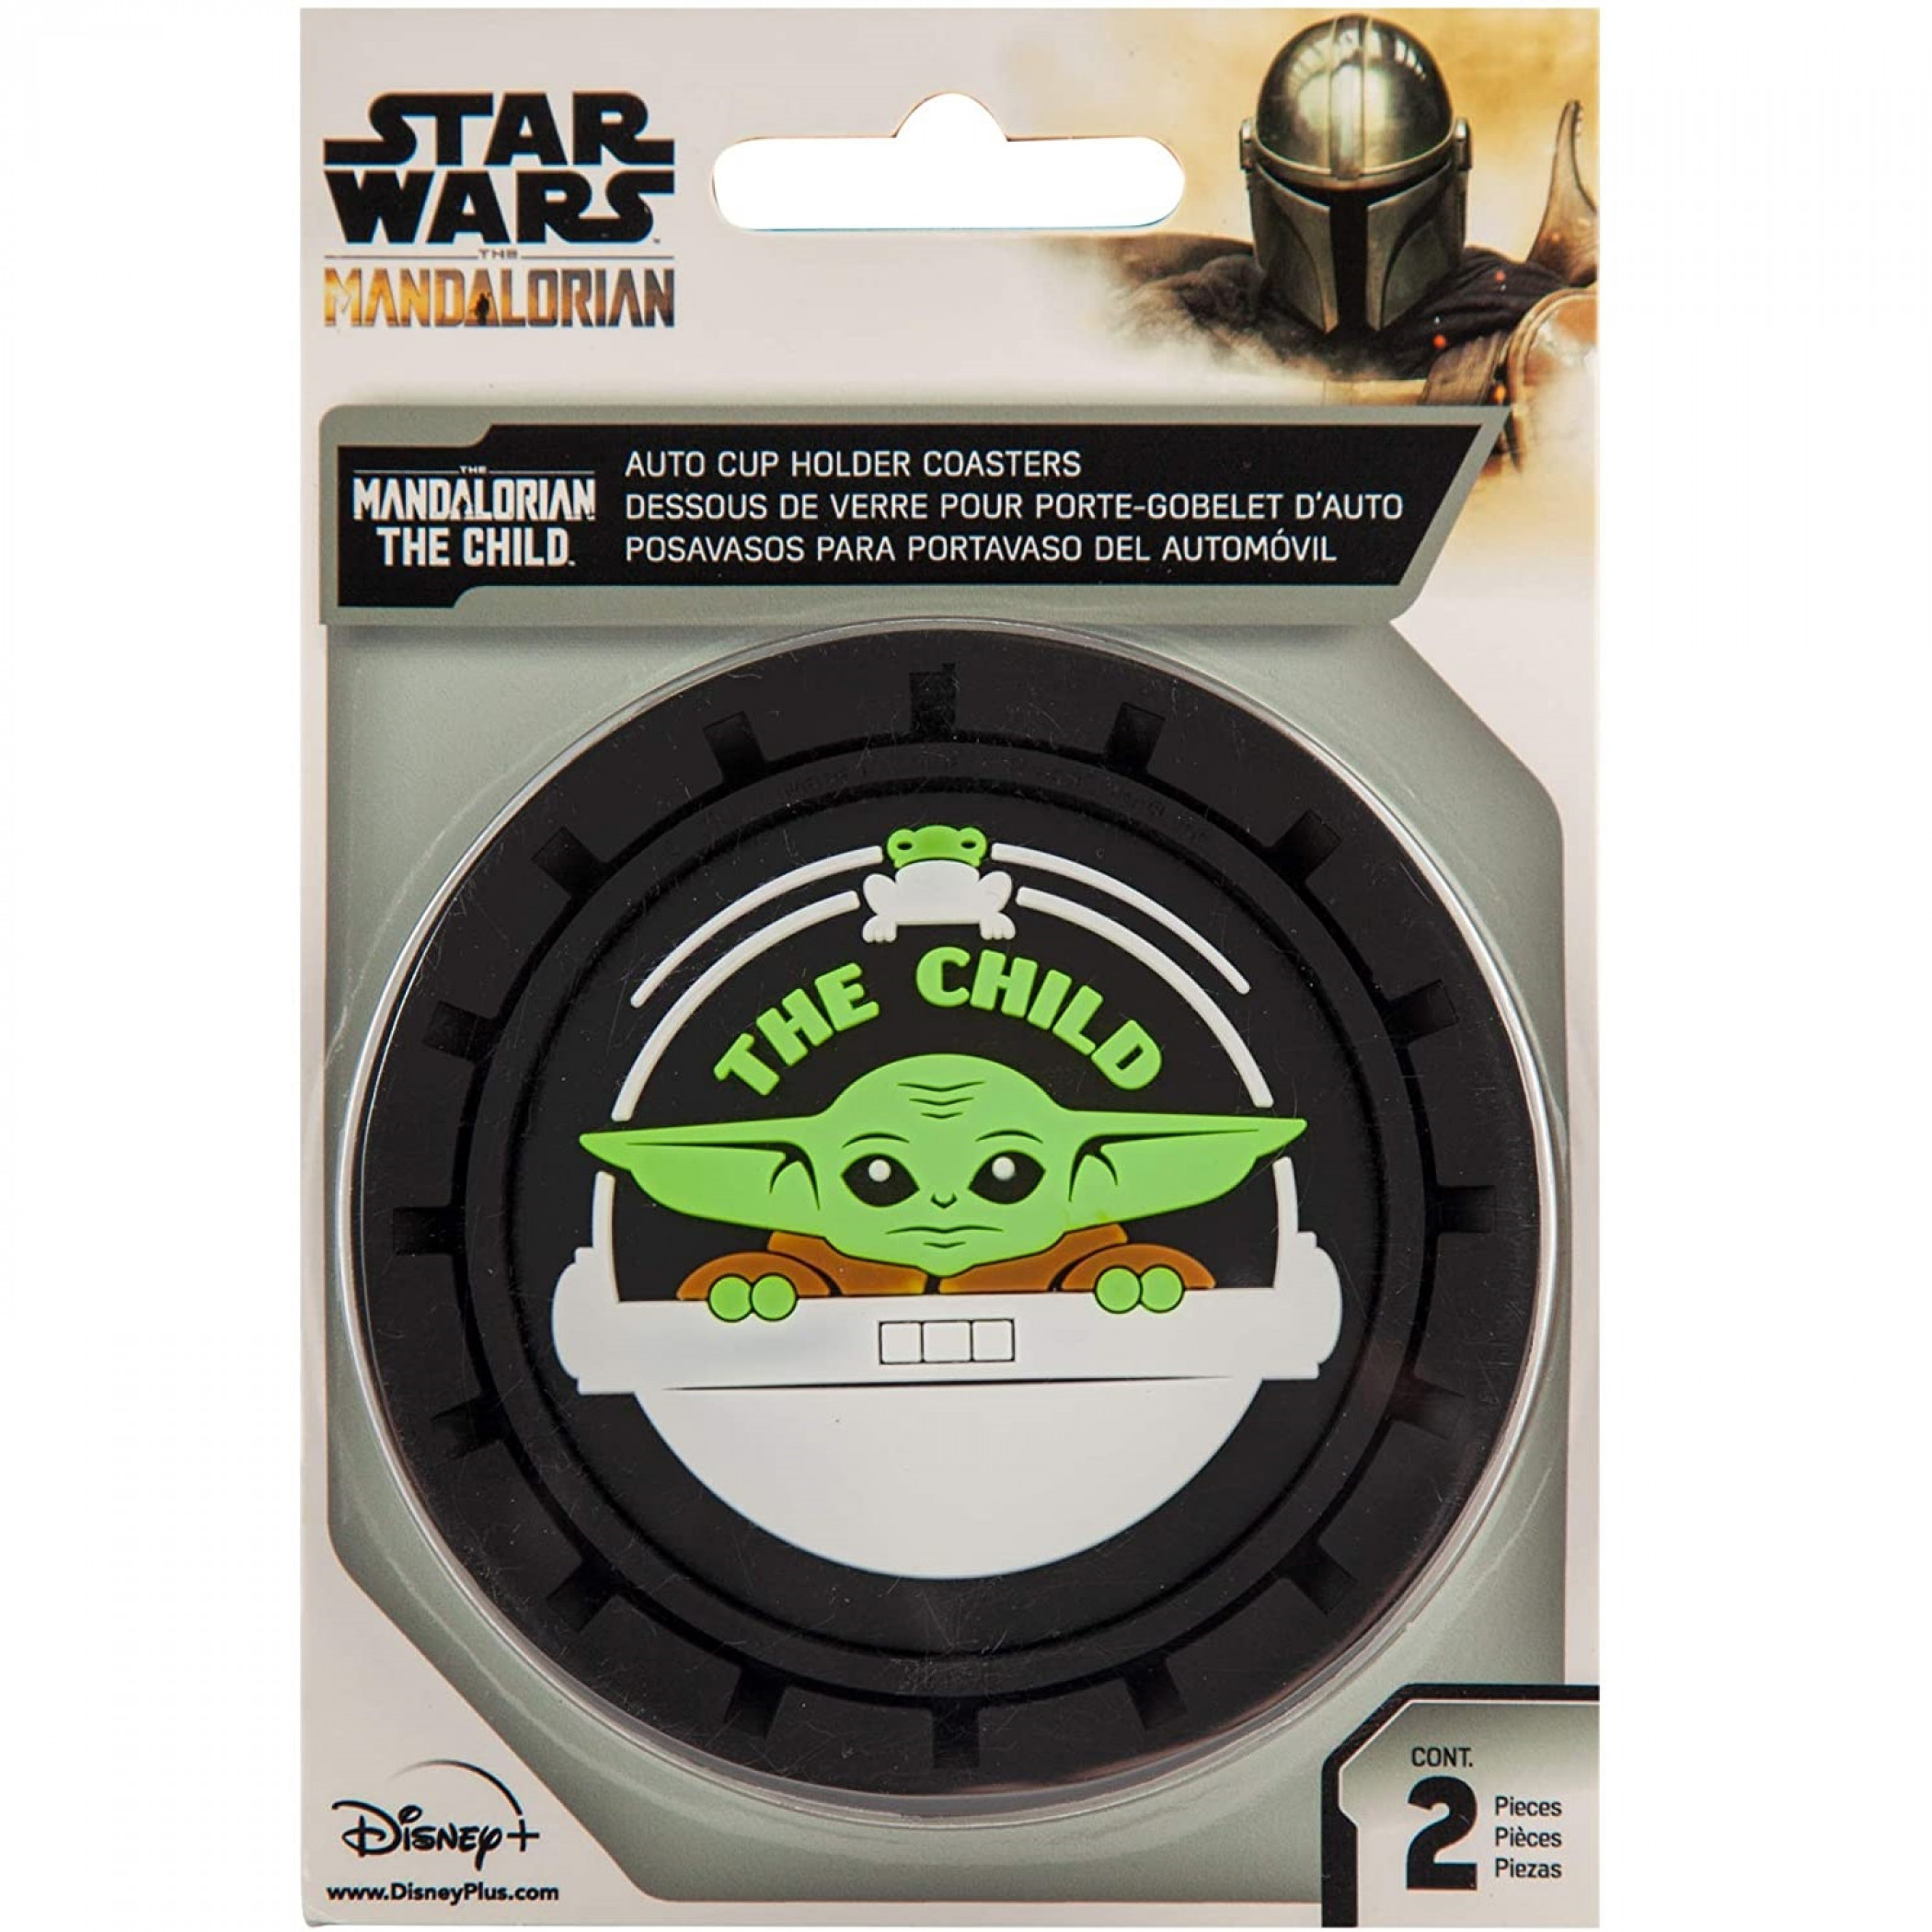 Star Wars Mandalorian The Child Grogu Car Cup Holder Coaster 2-Pack